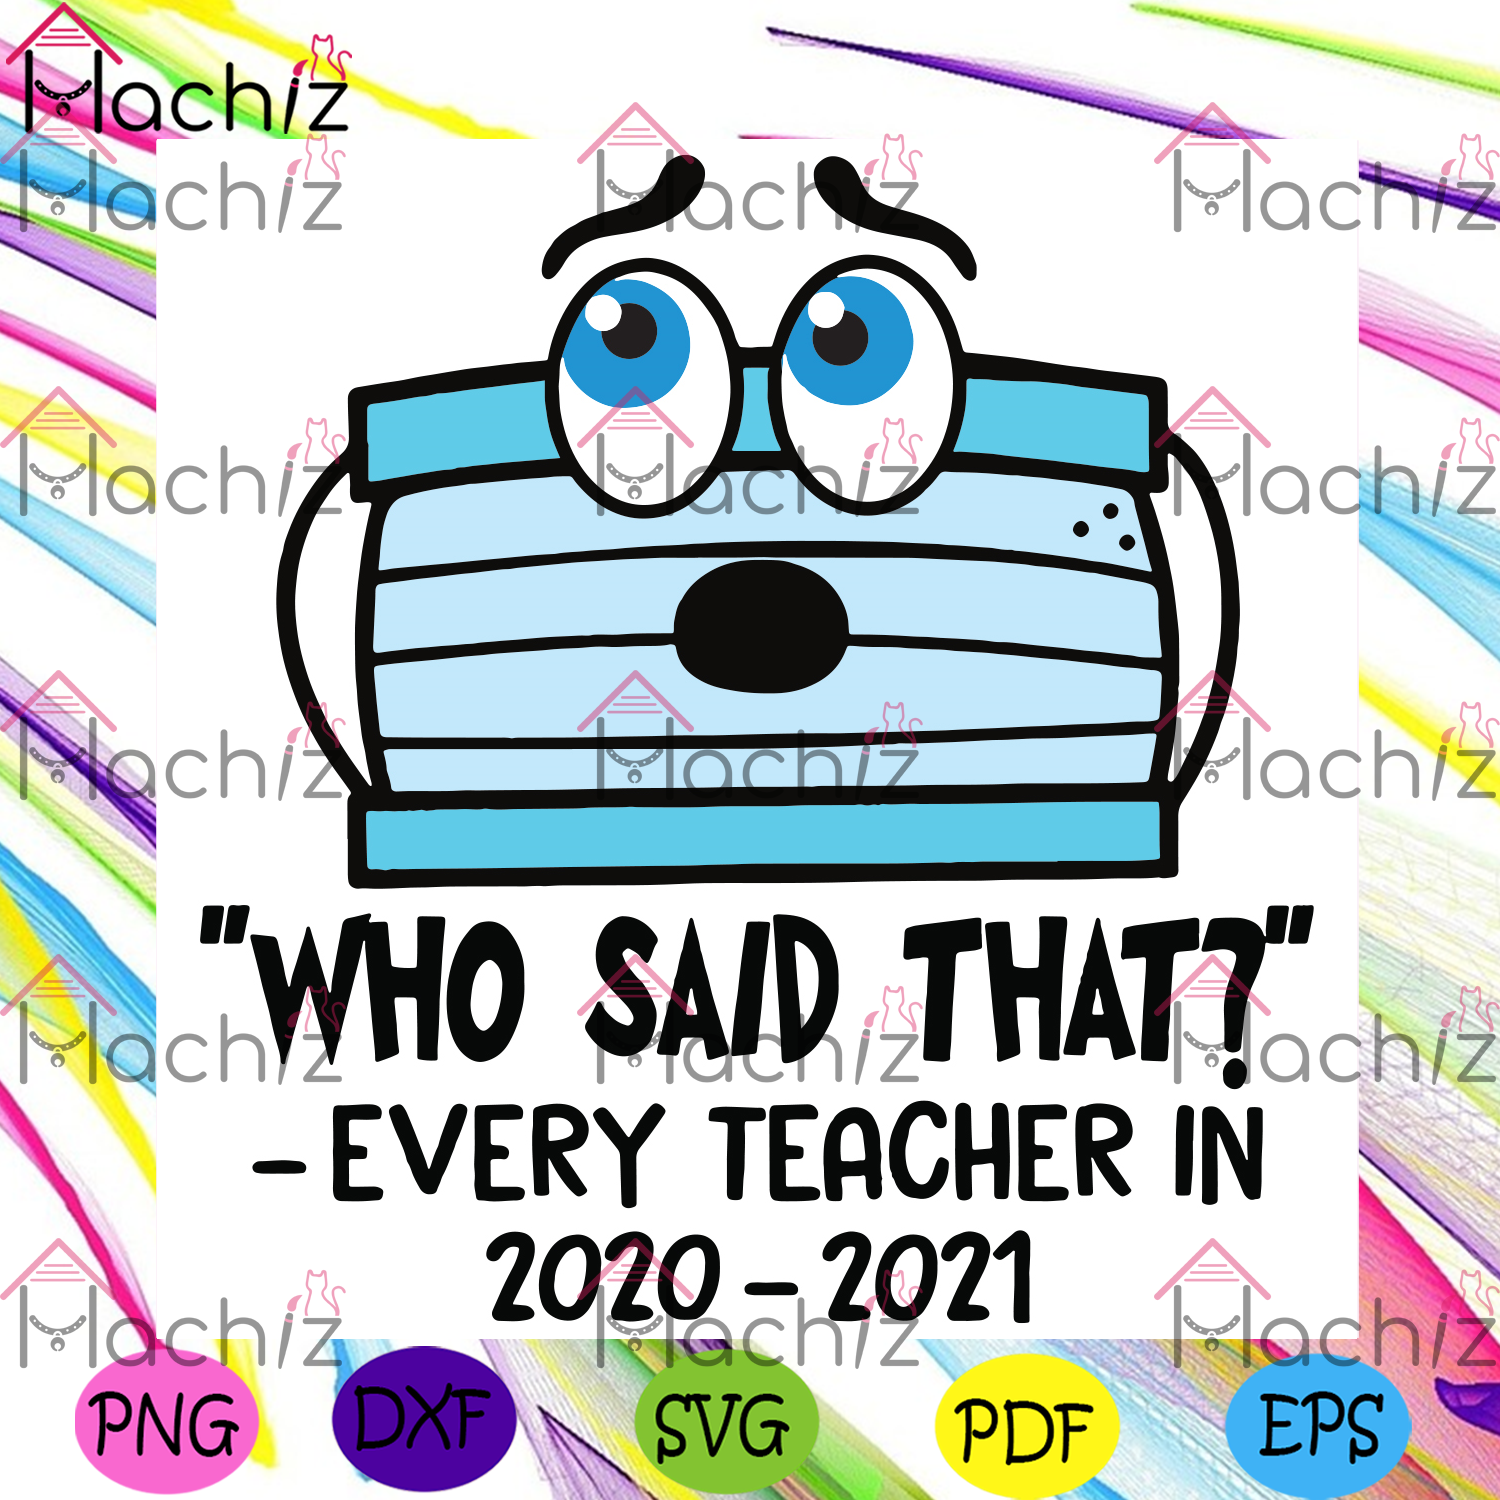 Who said that every teacher in 2020 2021 svg, mask face svg, mask face shirt, funny mask face svg, who said that svg, teacher svg, teacher shirt, teacher gift, teacher life svg, teacher lovers svg, virtual learning svg, students svg,